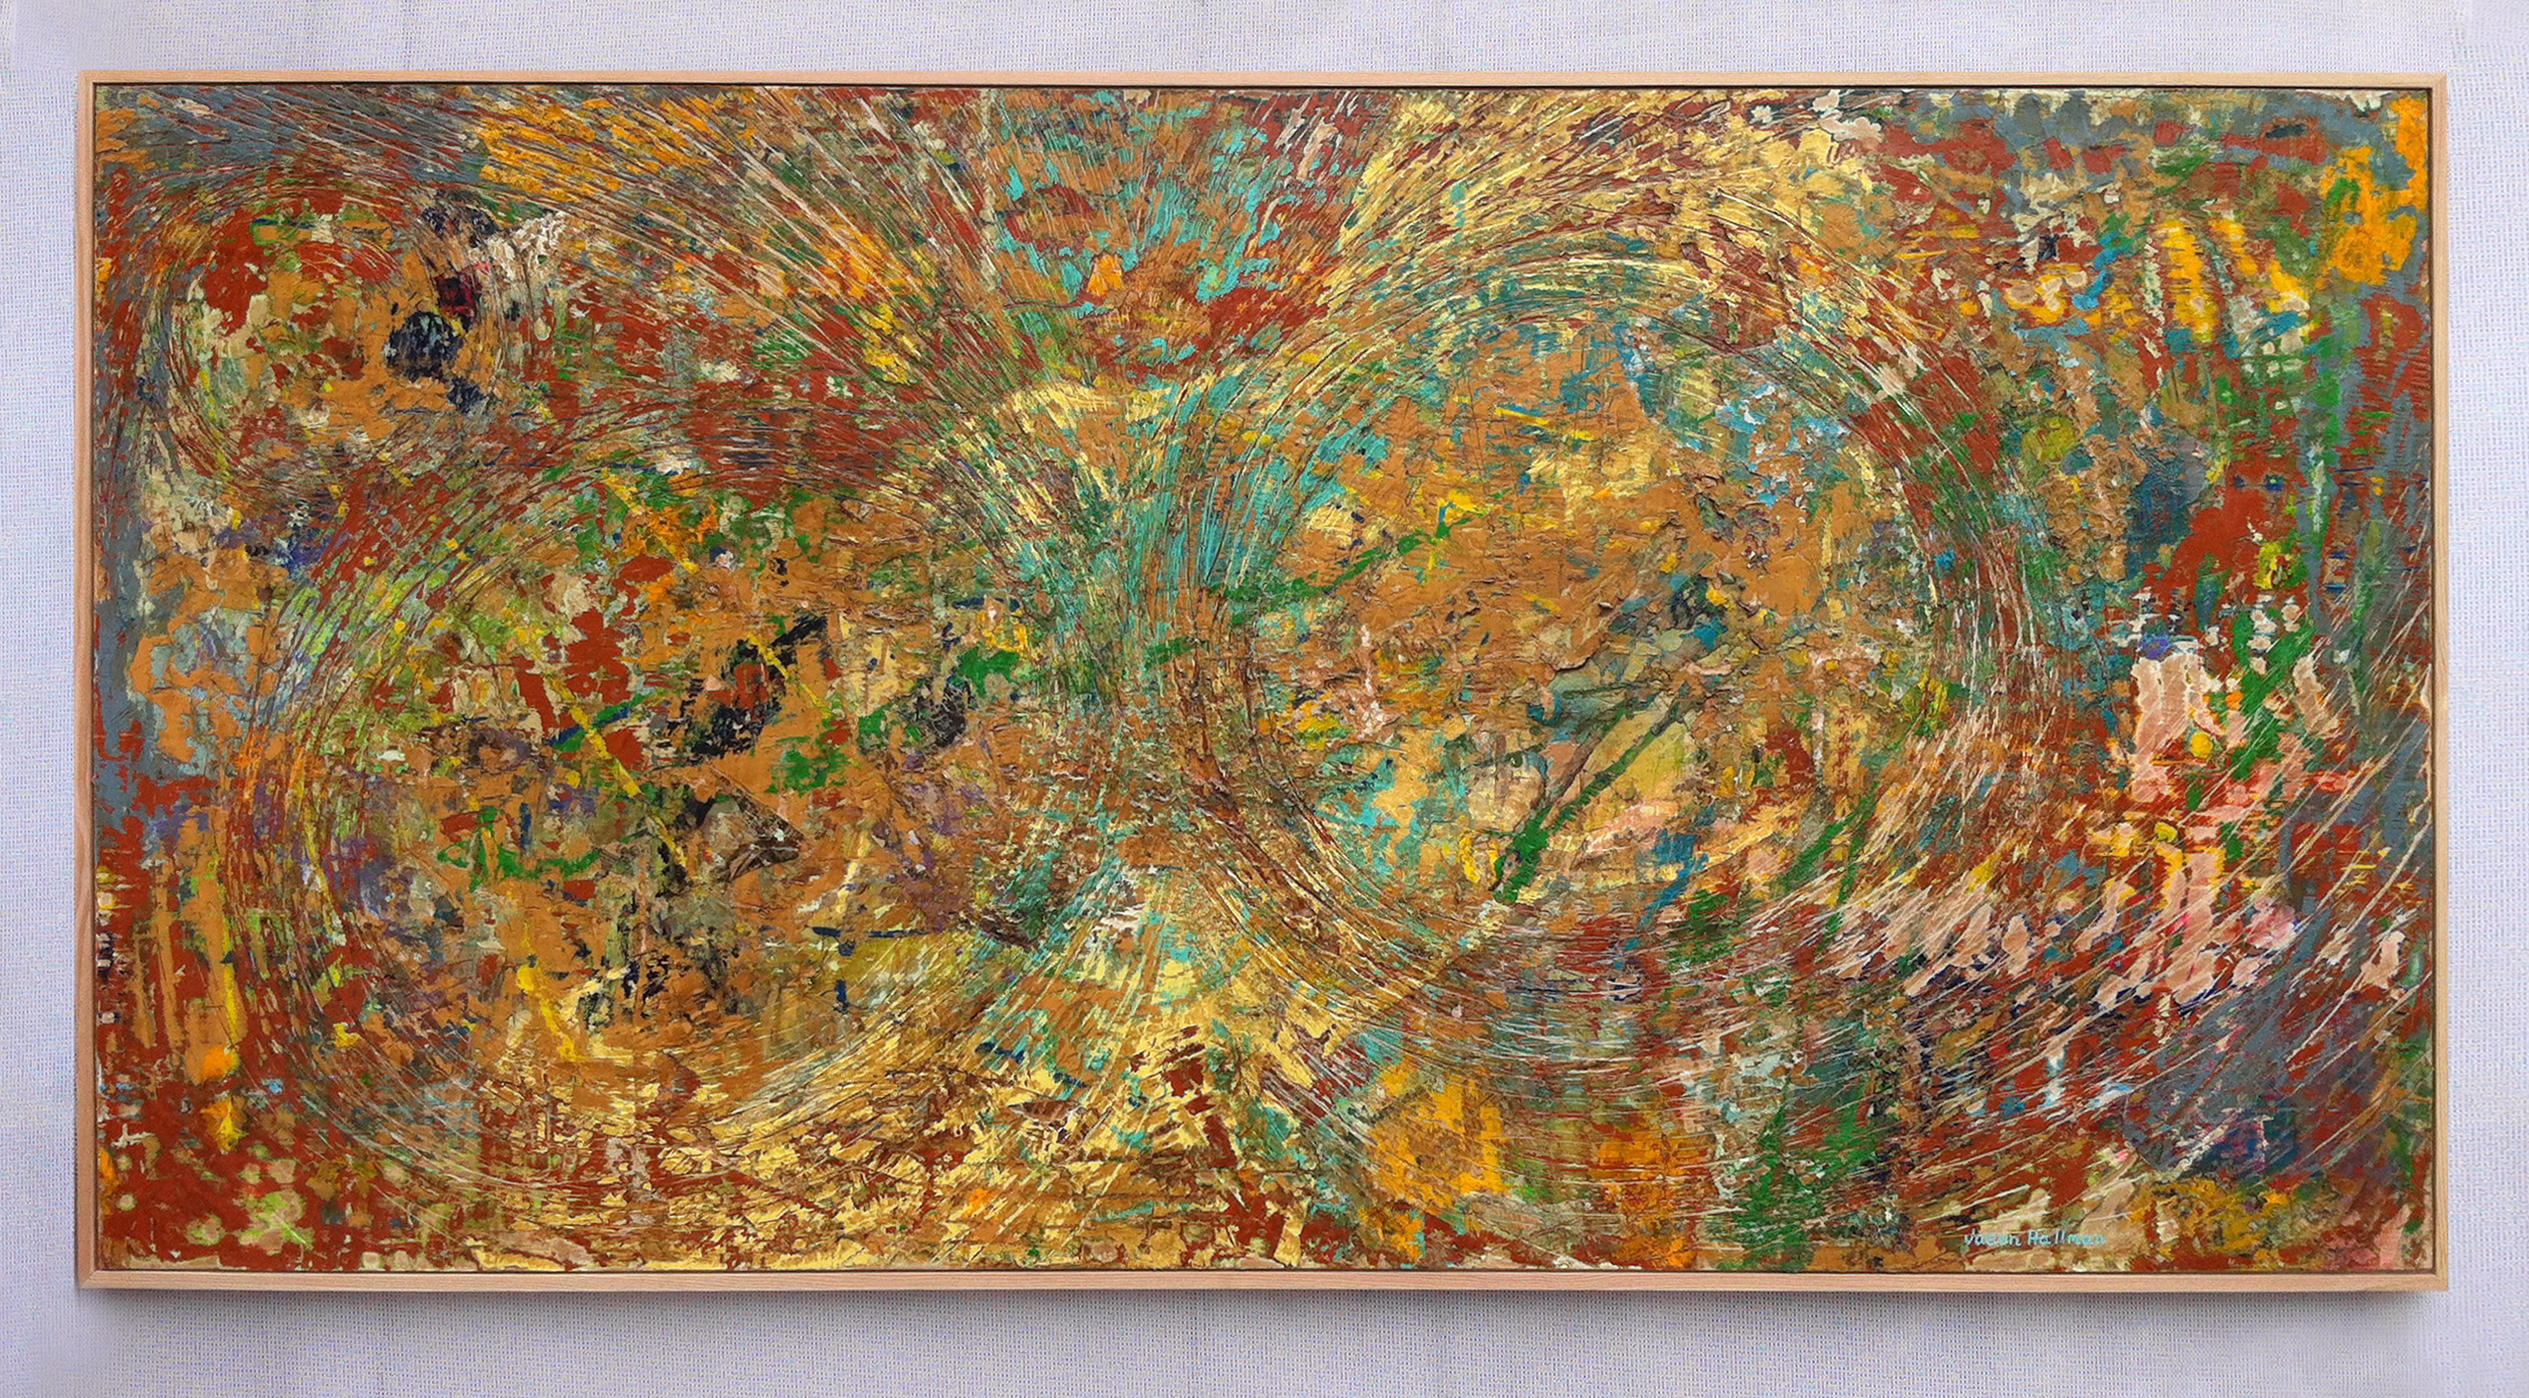 Vibration (50 x 98″ framed) mixed media